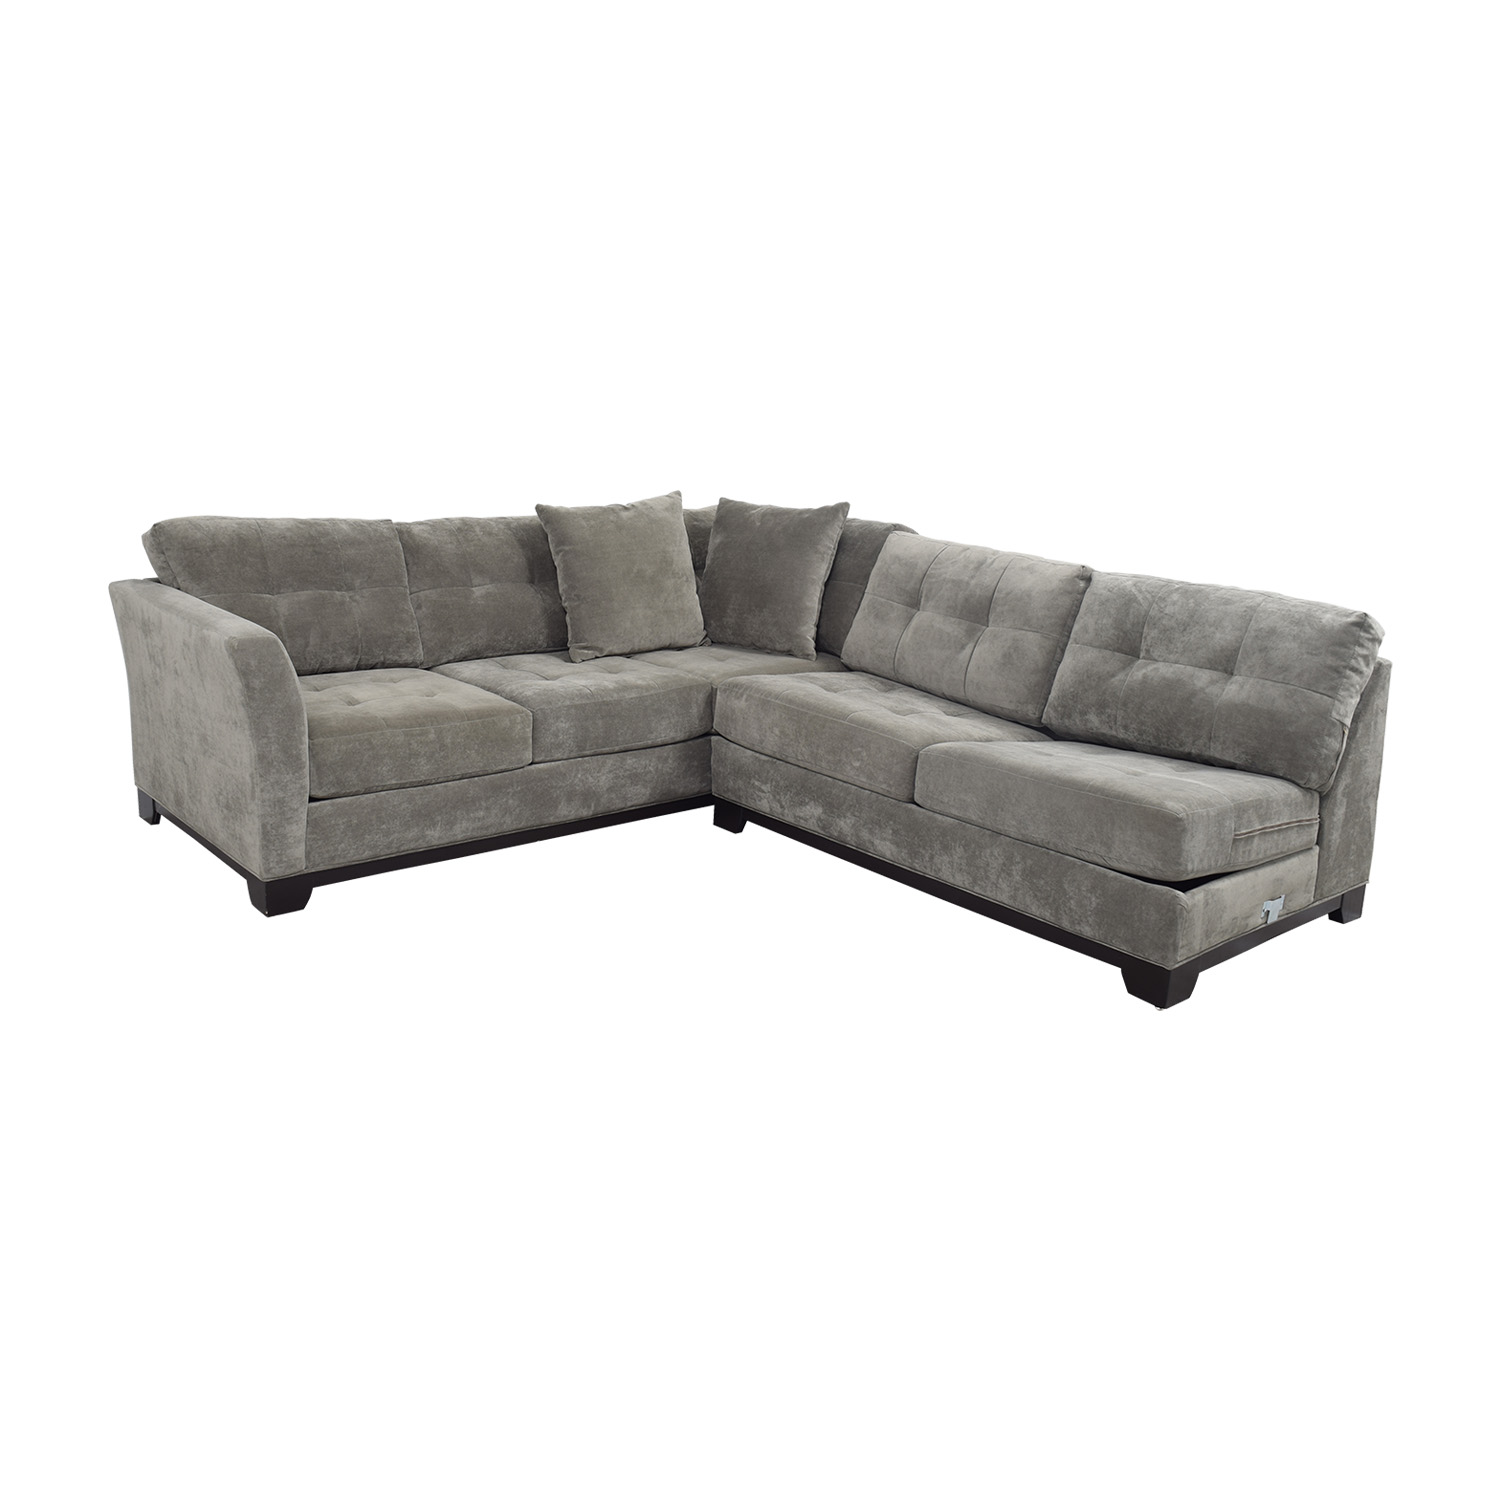 Macy S Gypsy Grey L Shaped Sleeper Sectional Used